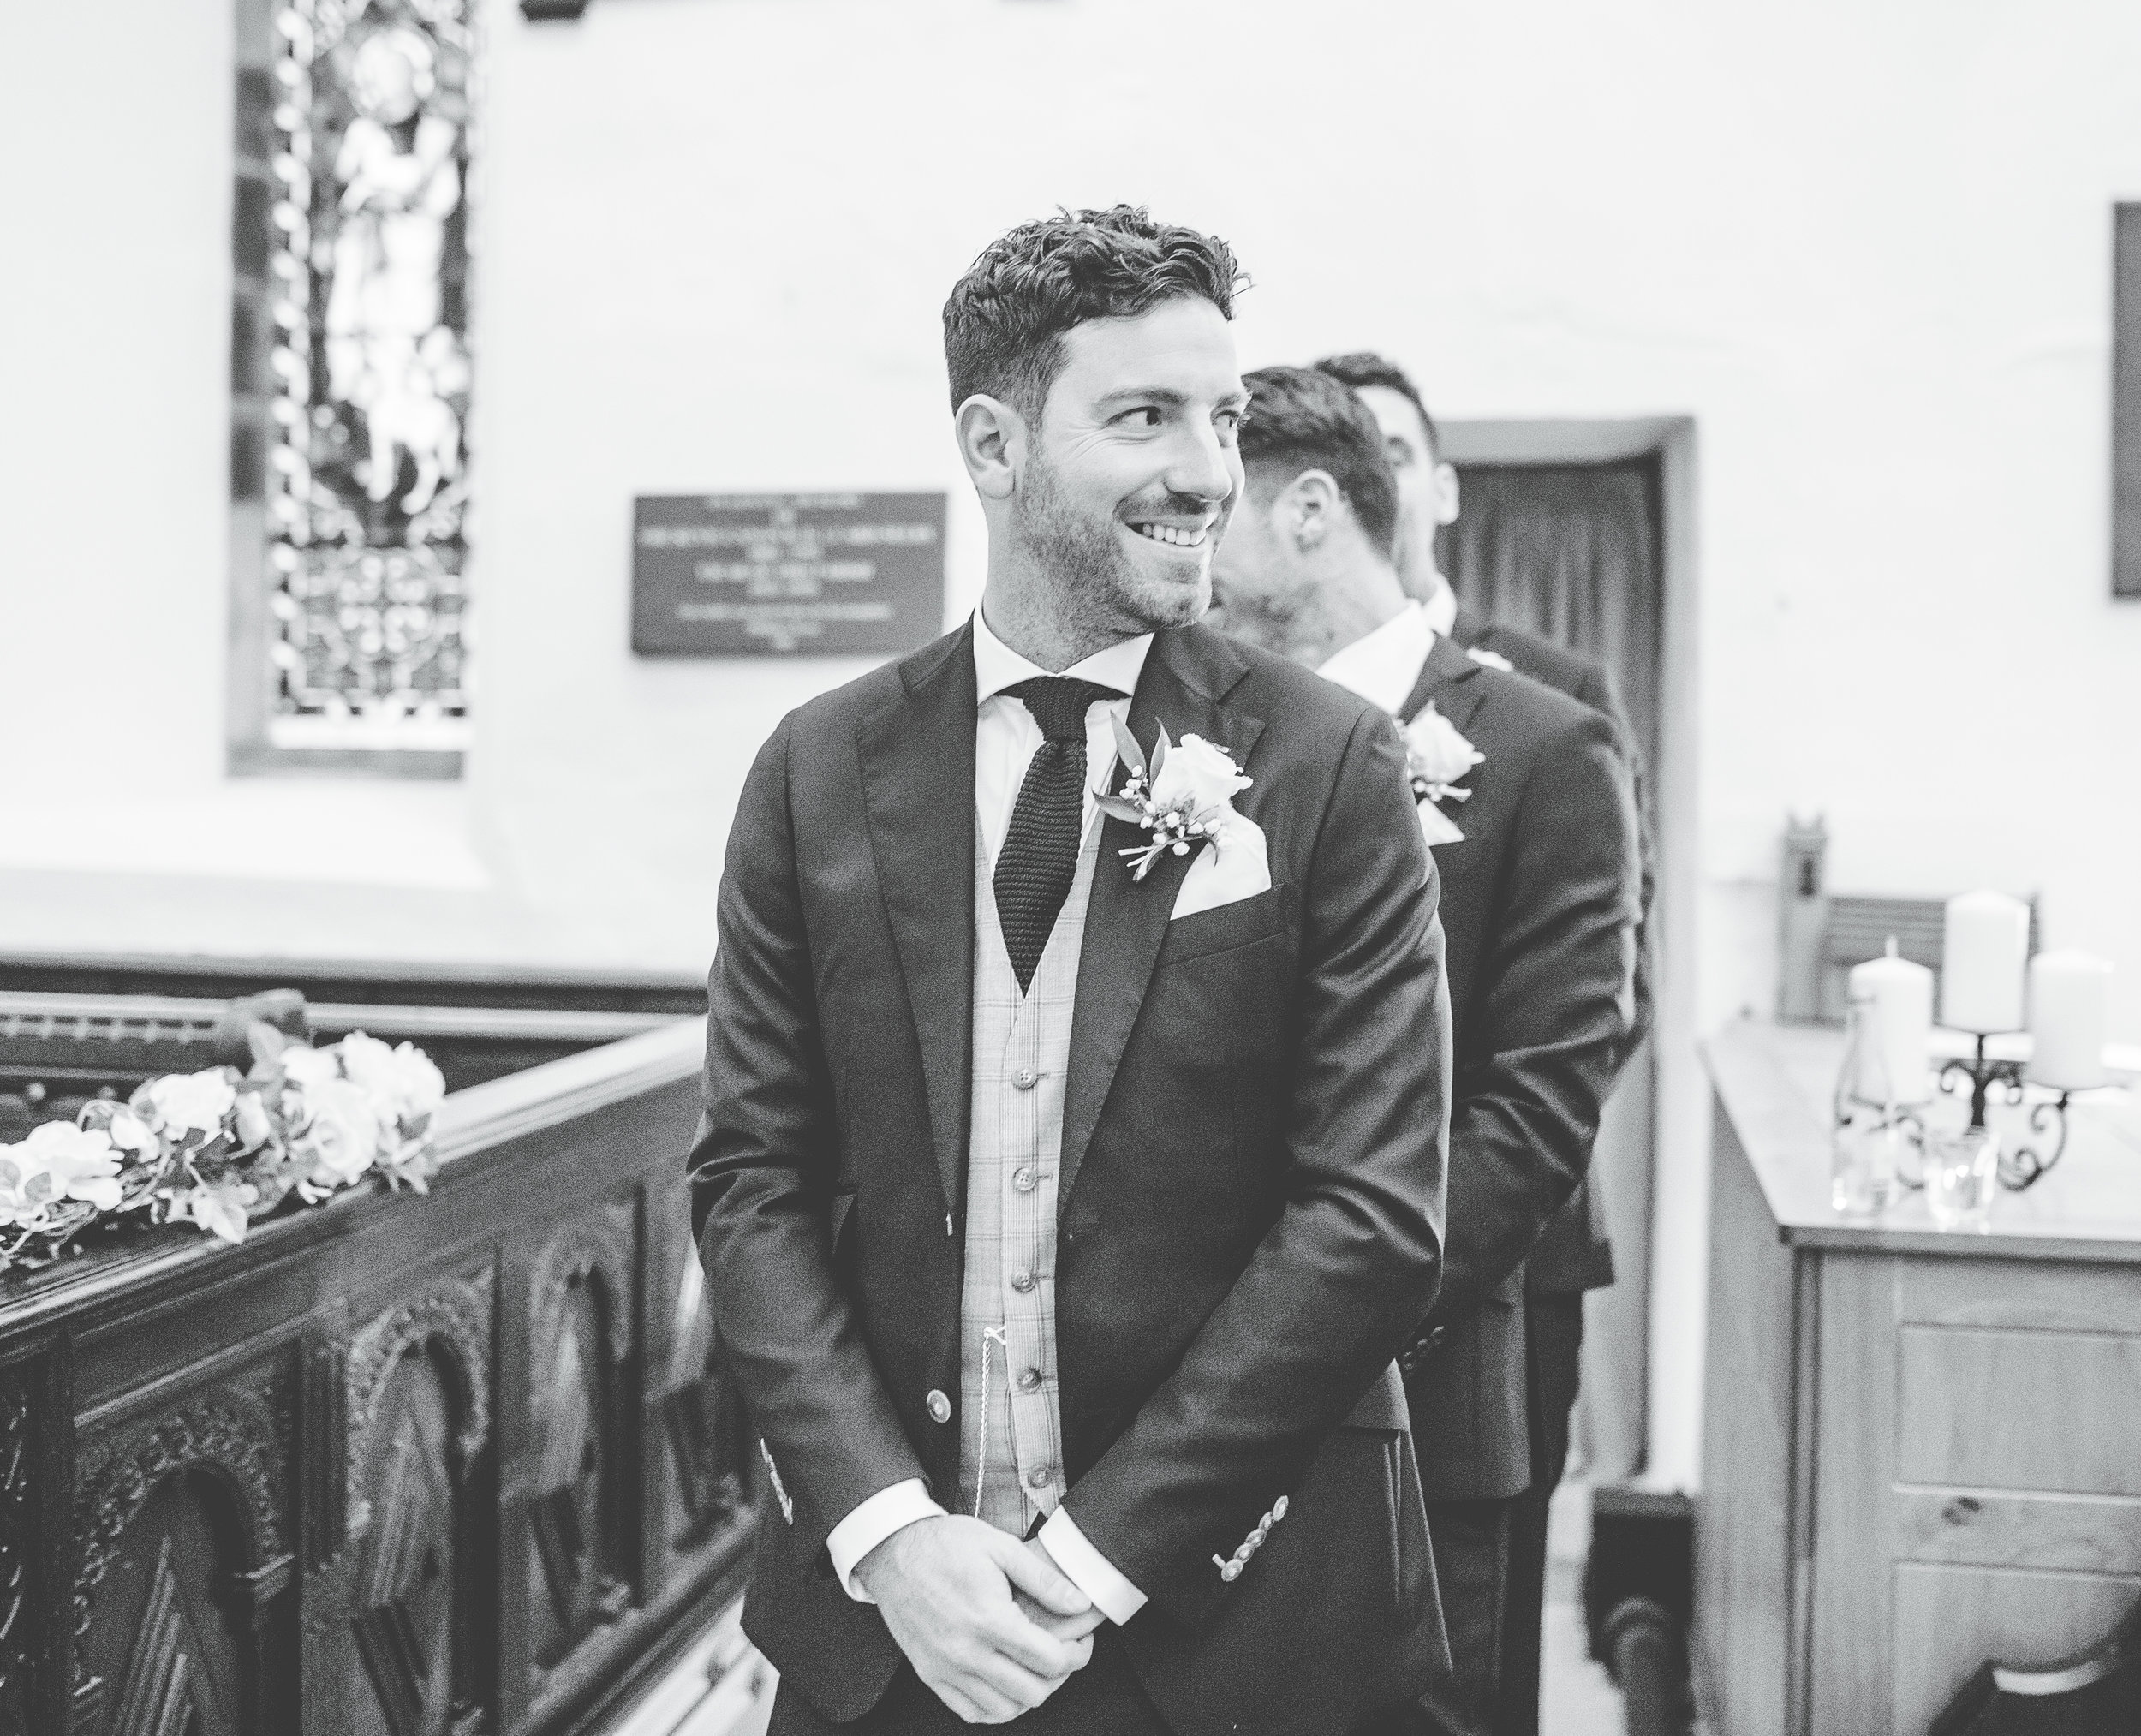 groom watches the bride arrive - documentary wedding photography in the lakes